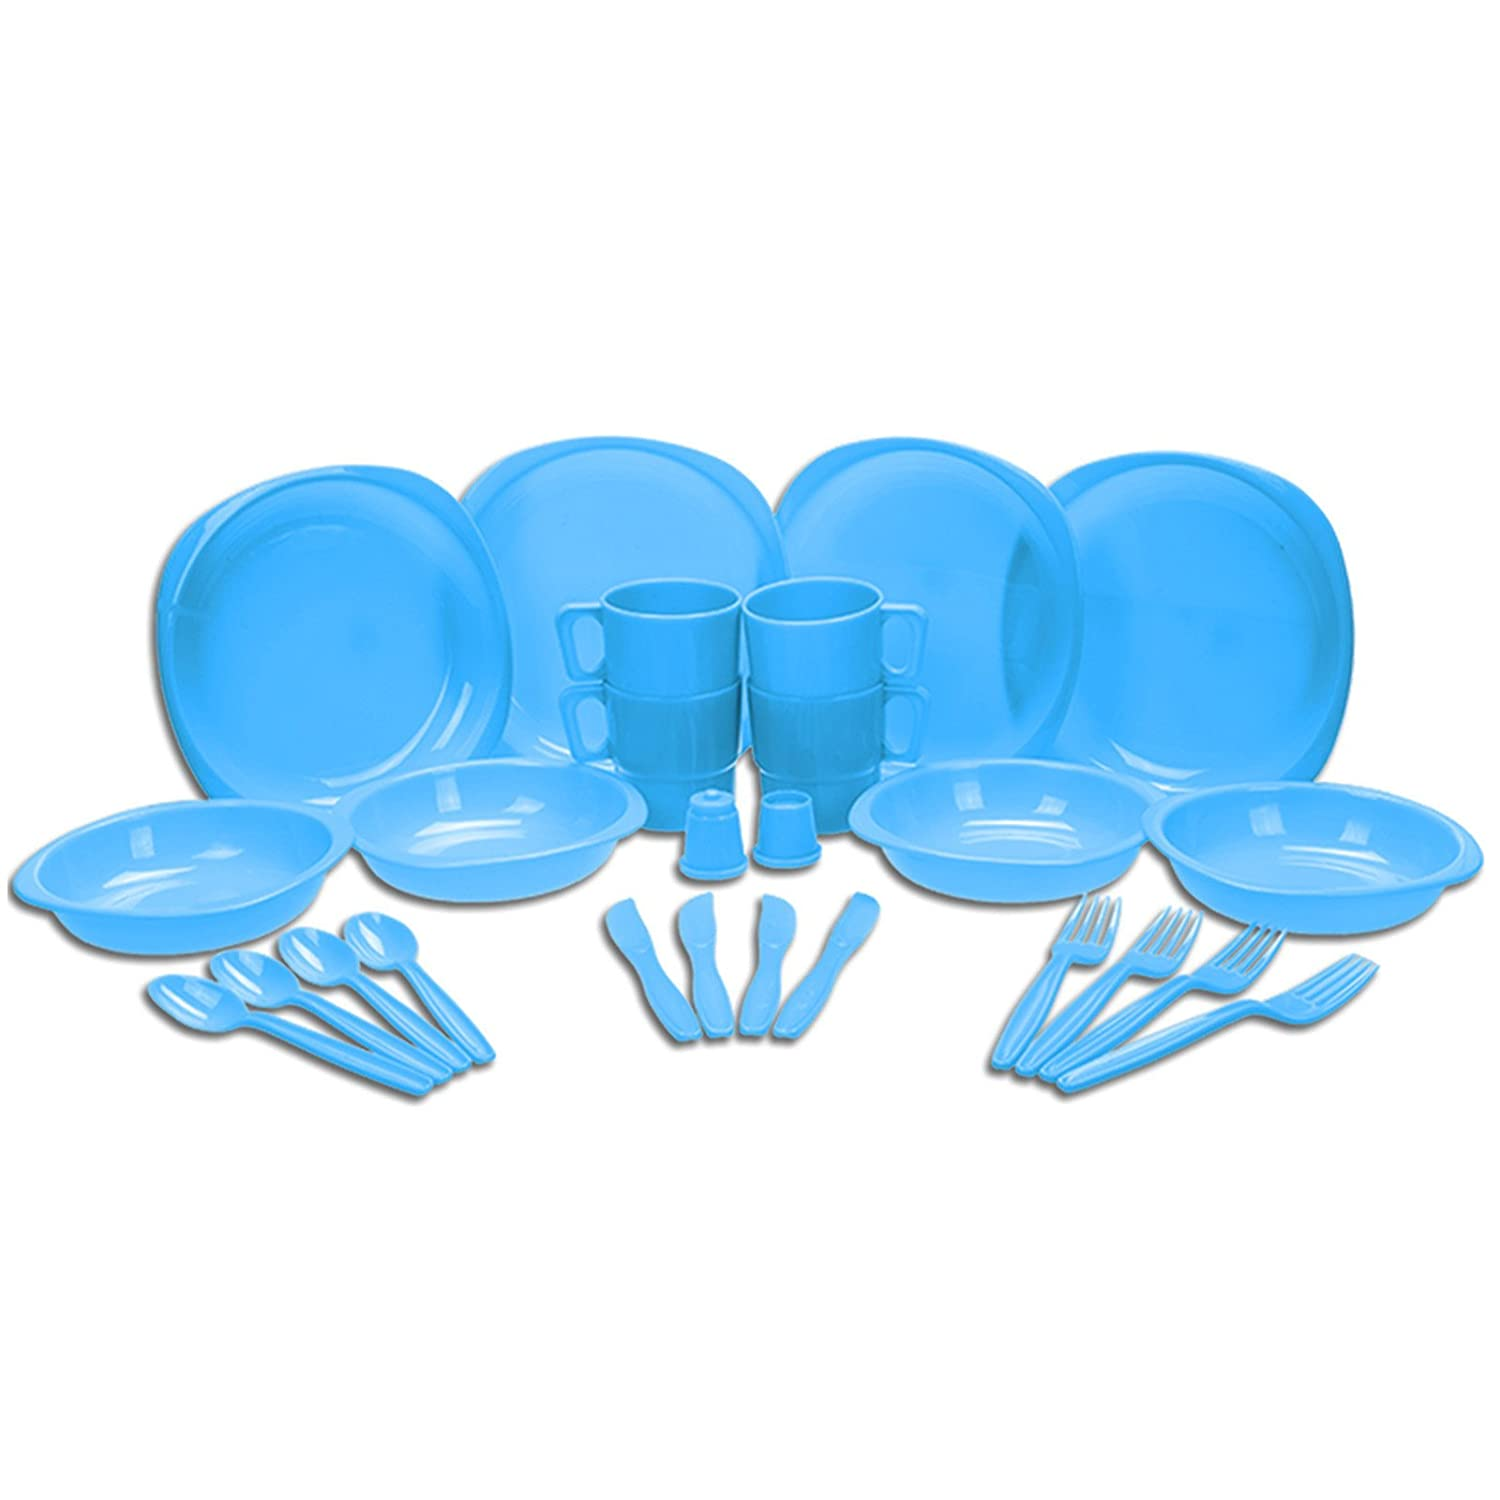 Choice of Blue or Green 26 Piece Plastic Picnic / BBQ / Festival / Camping / Party Set Including Plates, Bowls, Mugs, Knives, Forks, Spoons, Salt and Pepper Shaker (Blue) UKHobbyStore